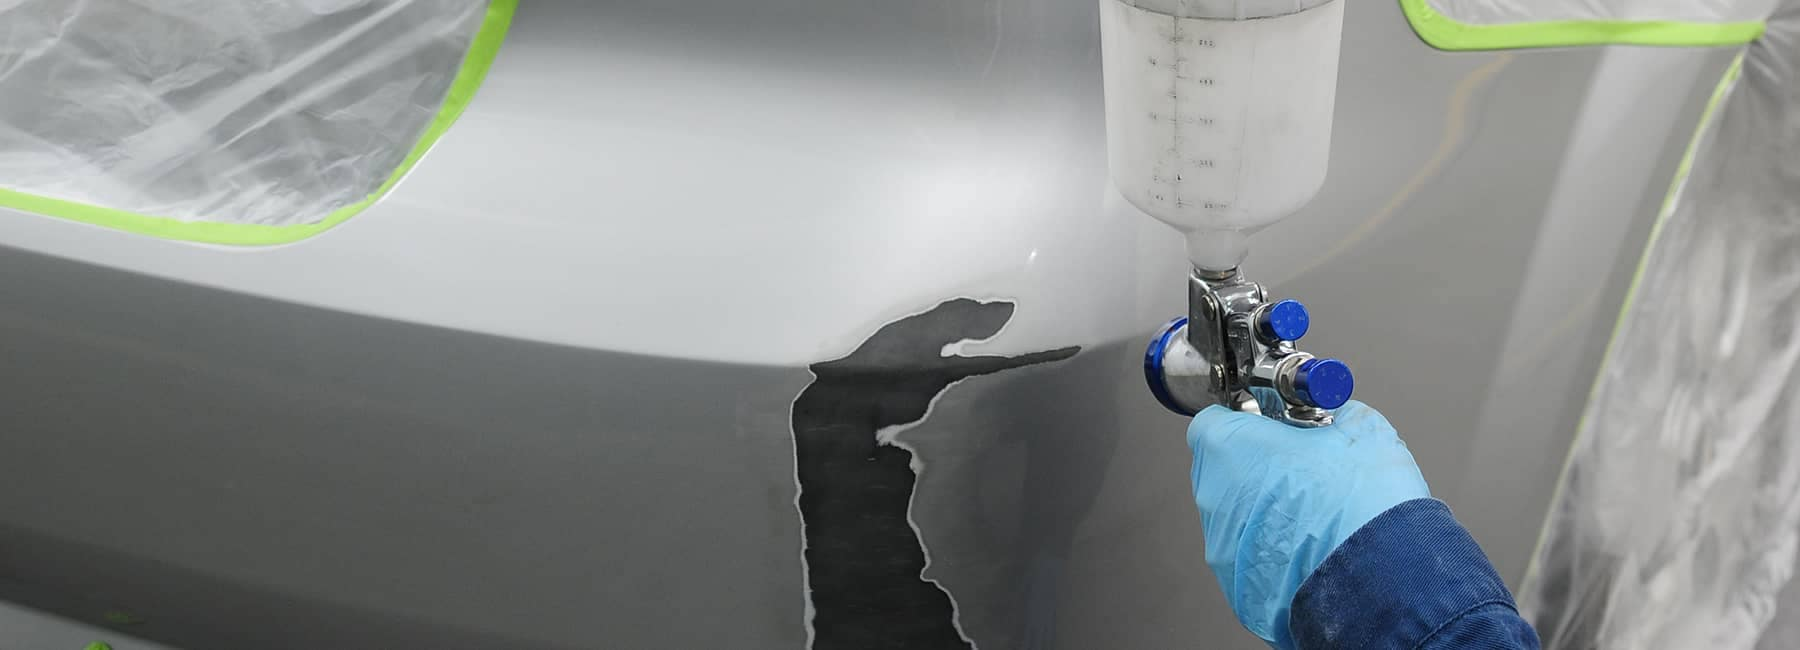 technician gets ready to spray paint on car repair